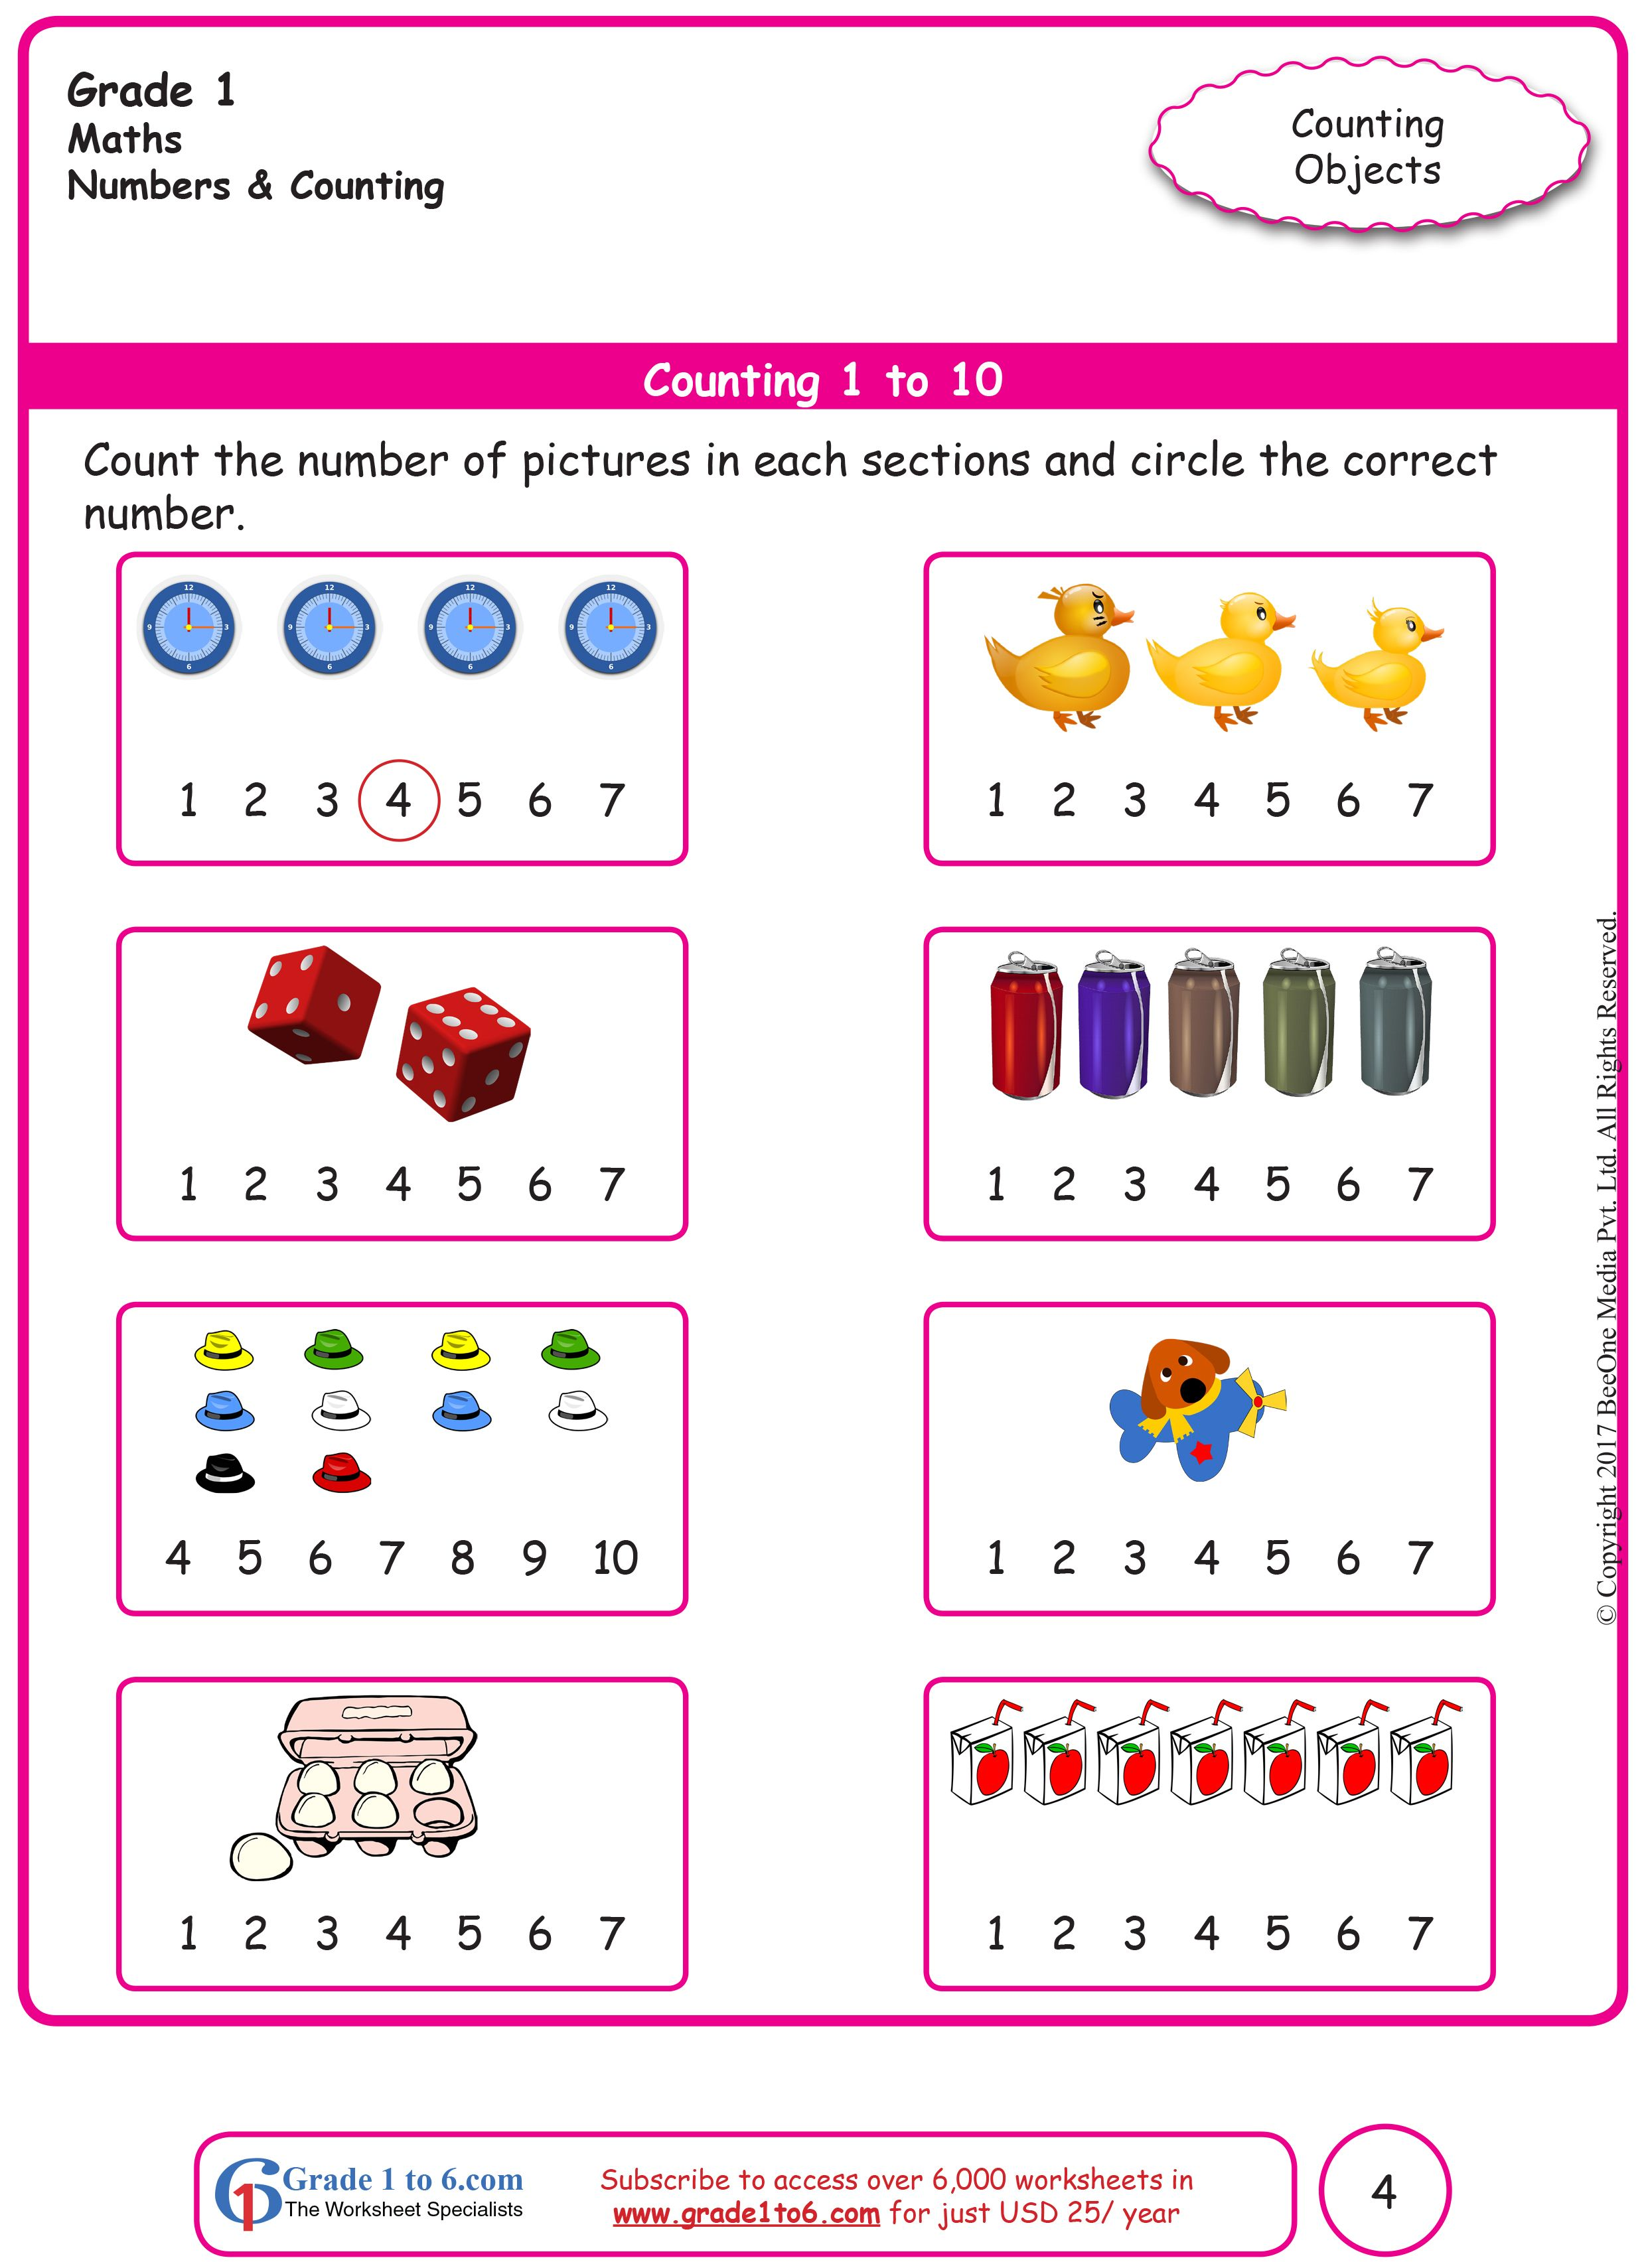 hight resolution of Counting Objects Worksheets Grade 1 Math   Kids math worksheets